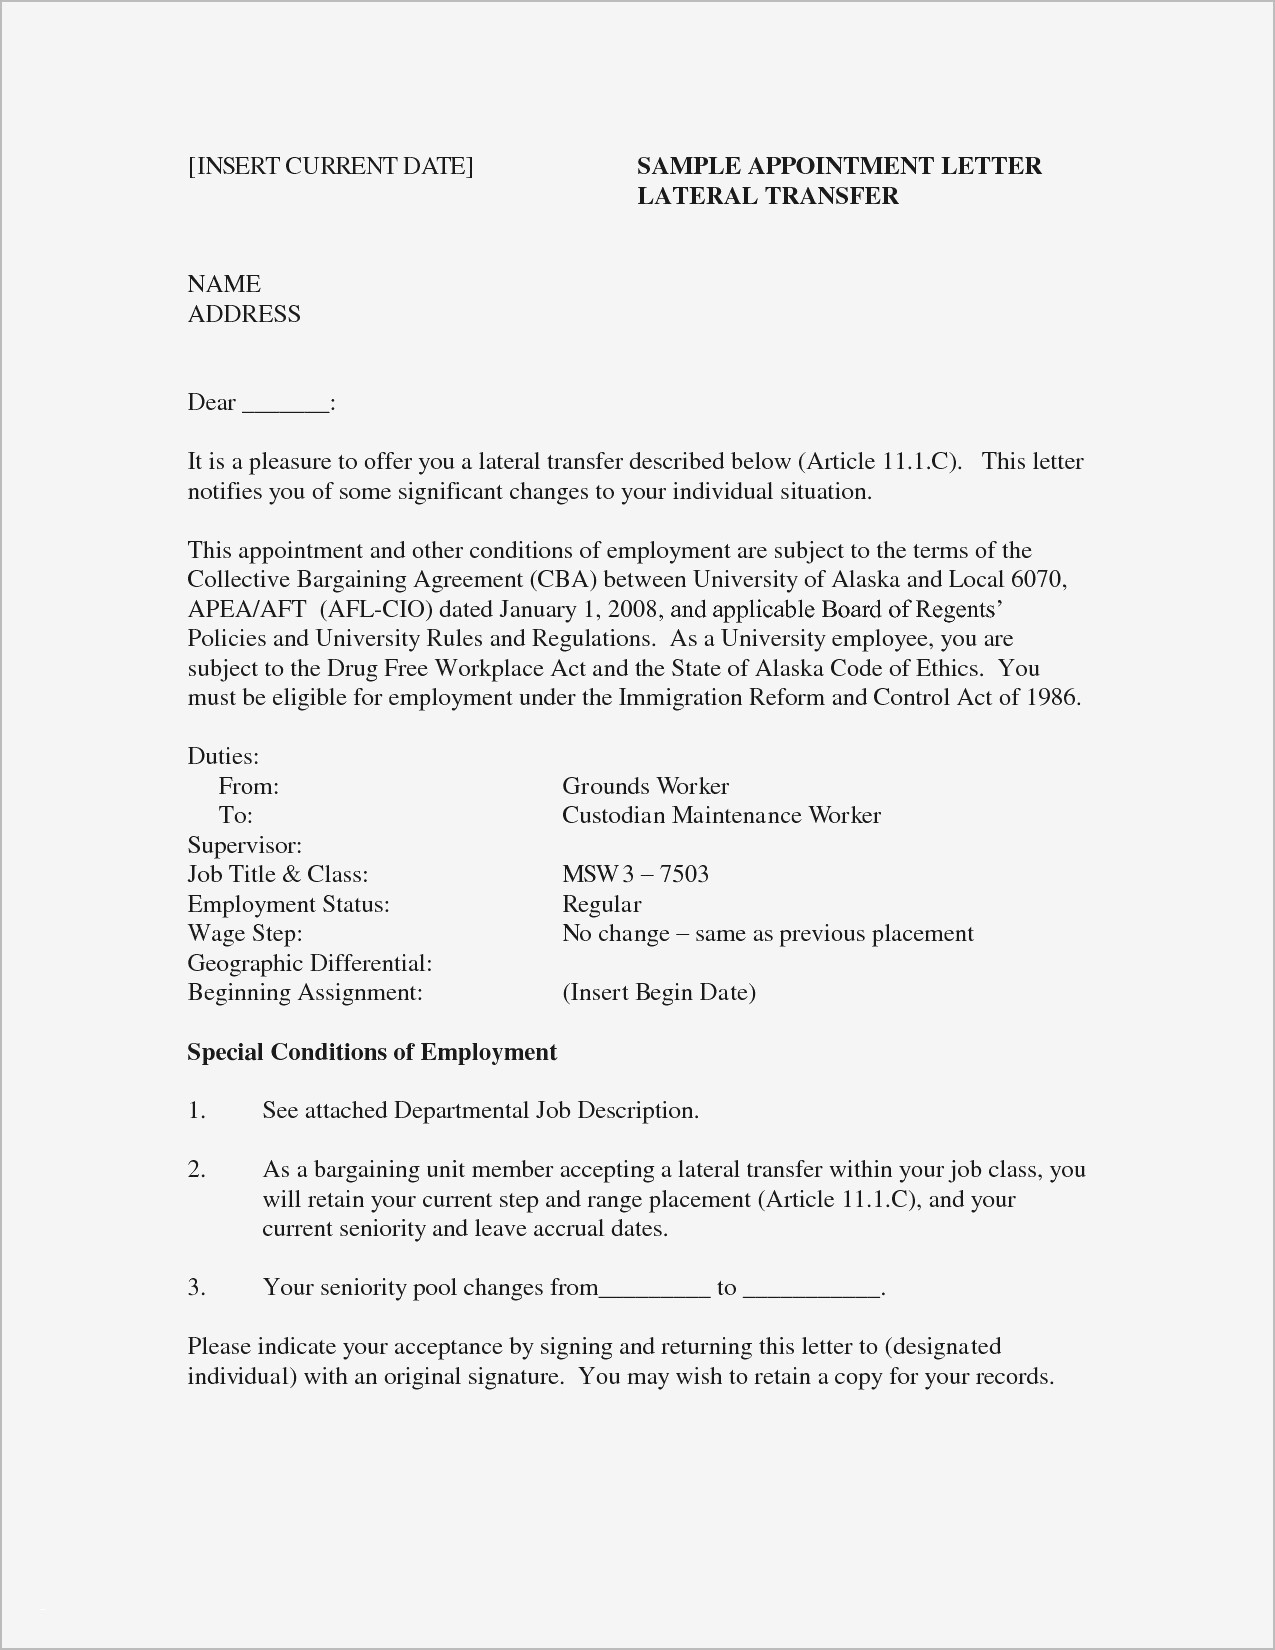 Dancer Resume Template - Dancer Resume Template New Dance Resume Examples Inspirational Dance